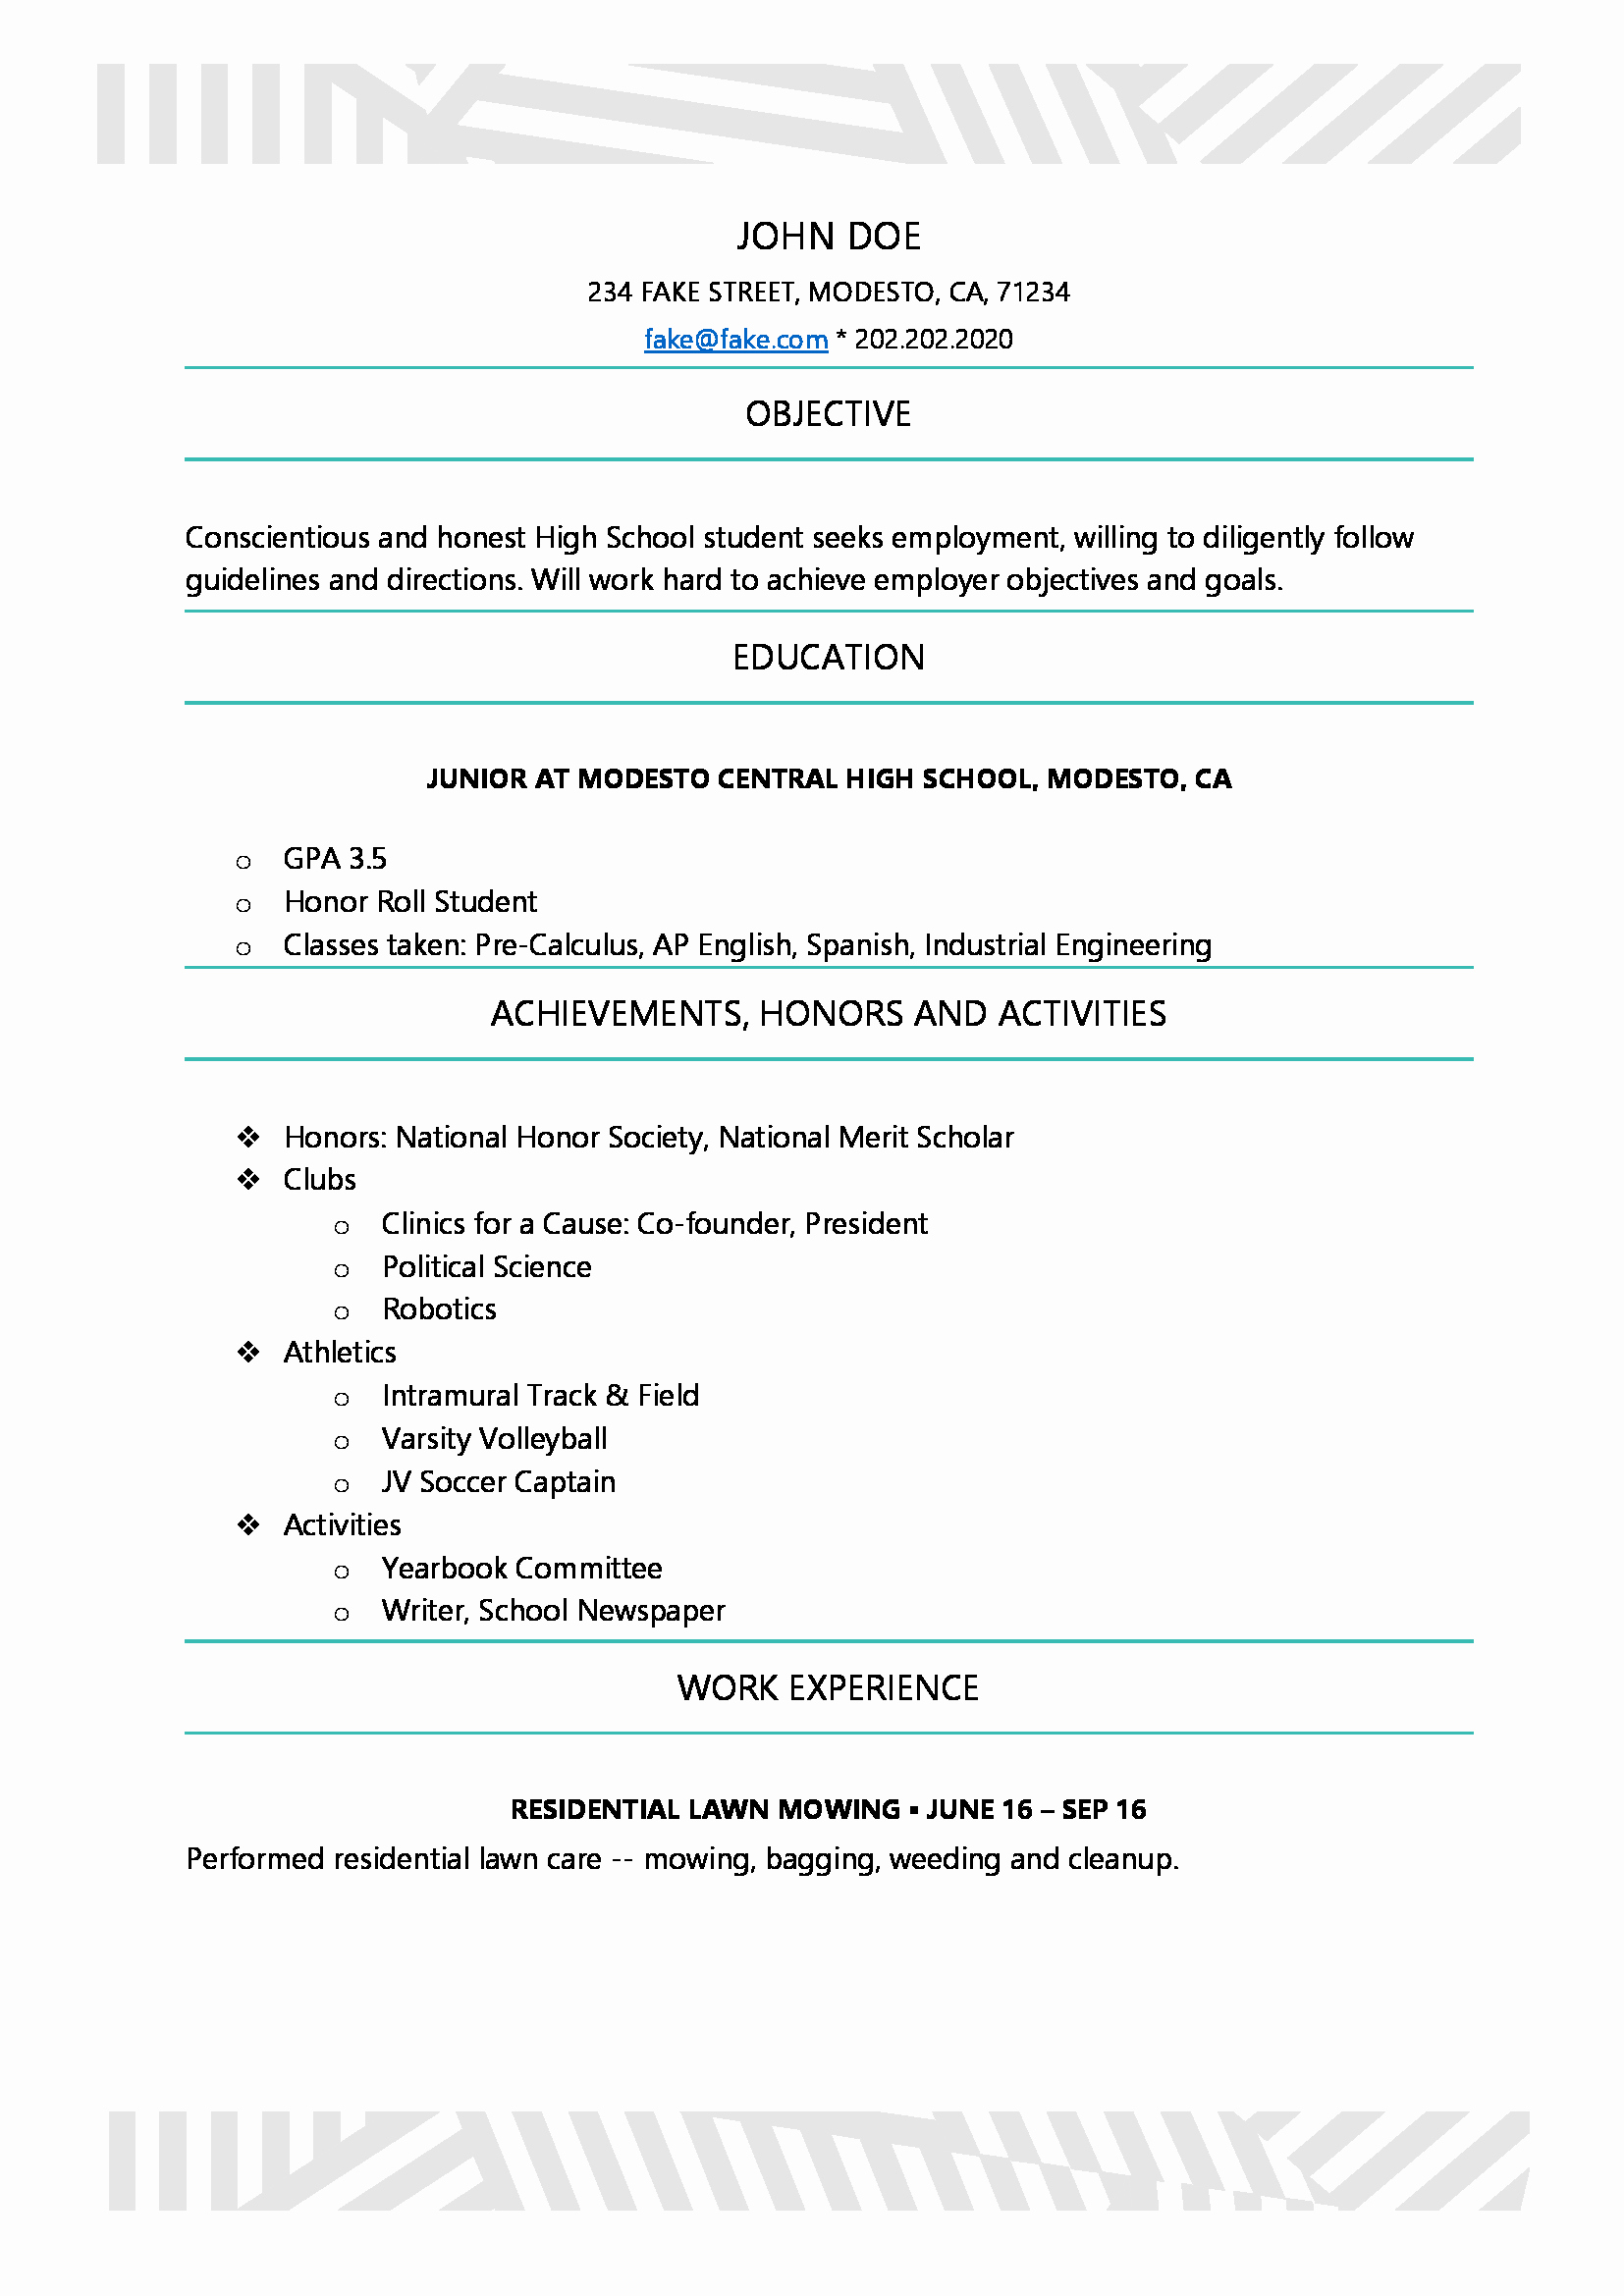 Resume Examples for Highschool Students Lovely High School Resume Resumes Perfect for High School Students